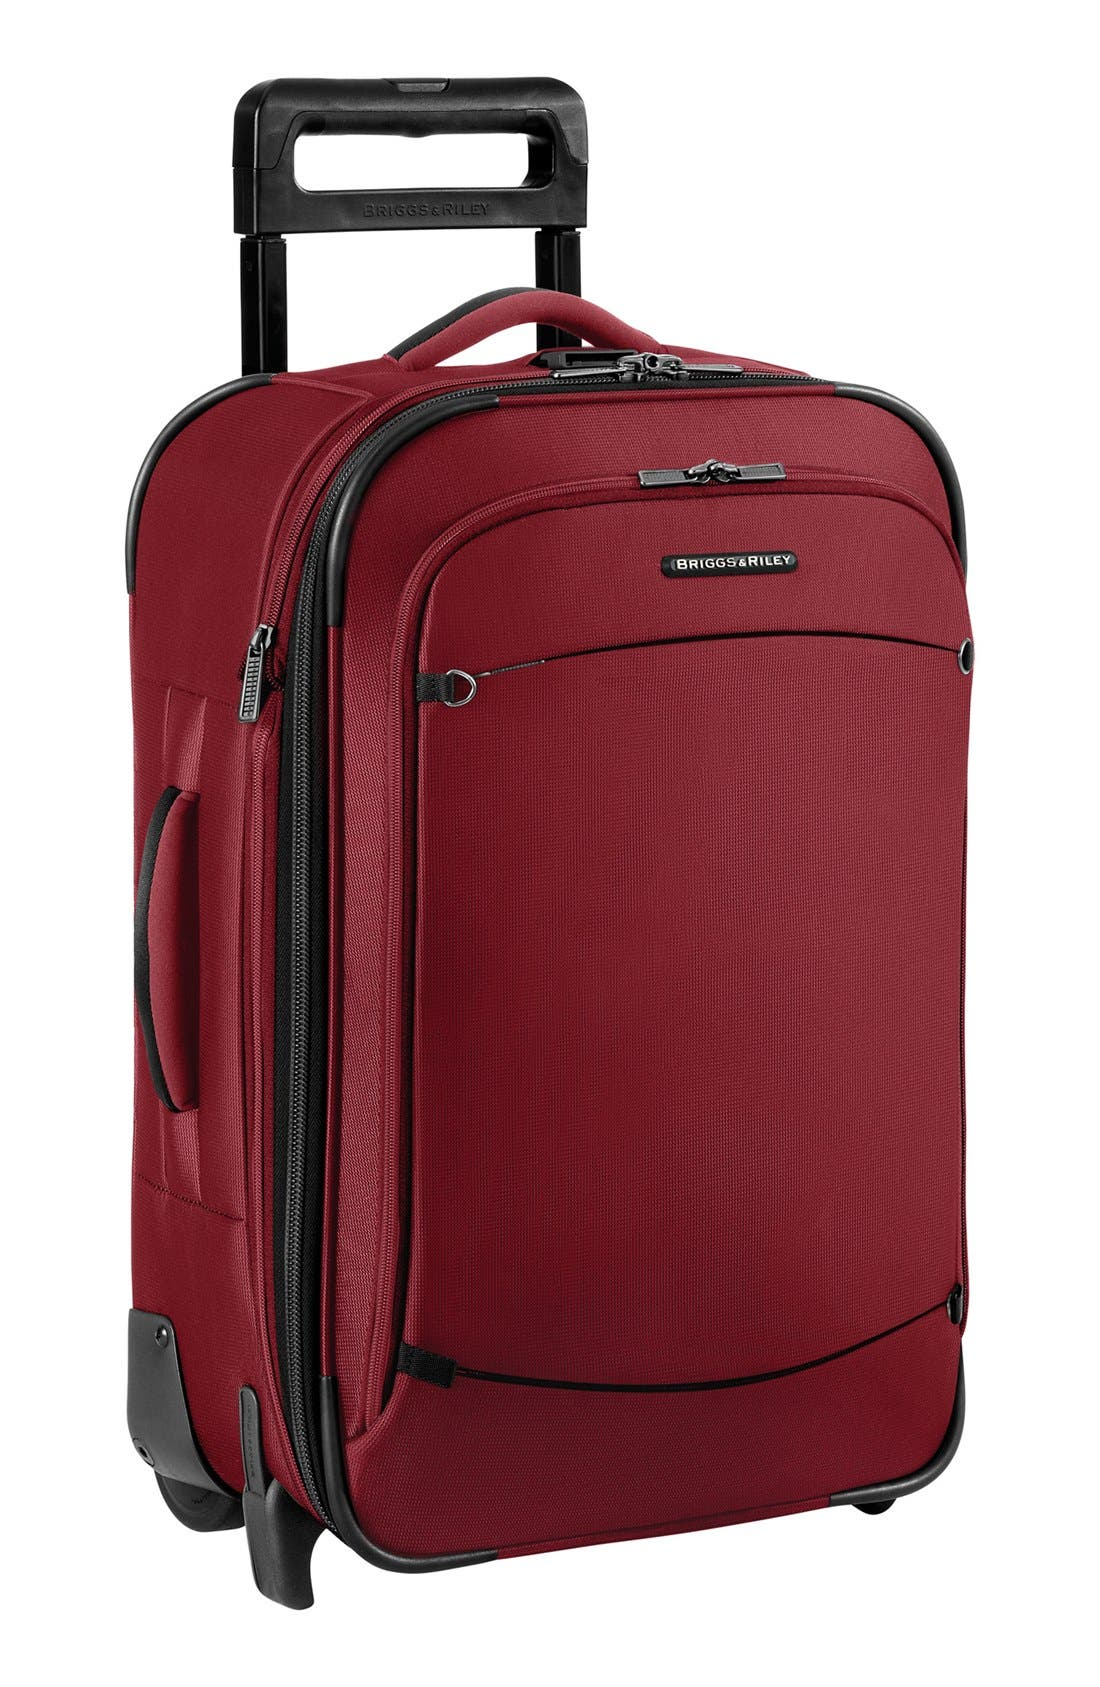 Main Image - Briggs & Riley Rolling Carry-On Bag (22-Inch)